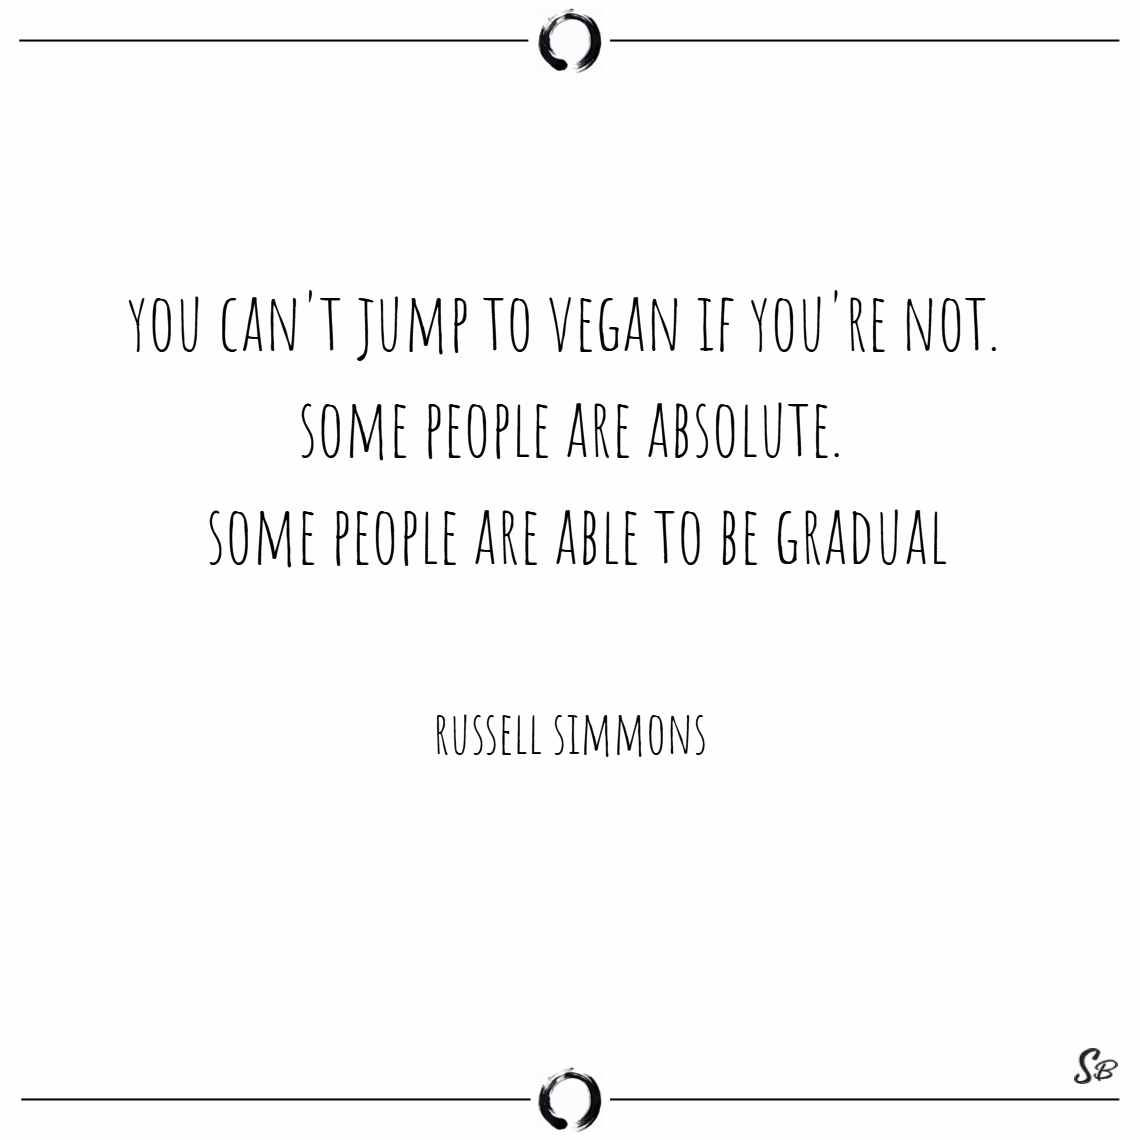 You can't jump to vegan if you're not. some people are absolute. some people are able to be gradual. – russell simmons